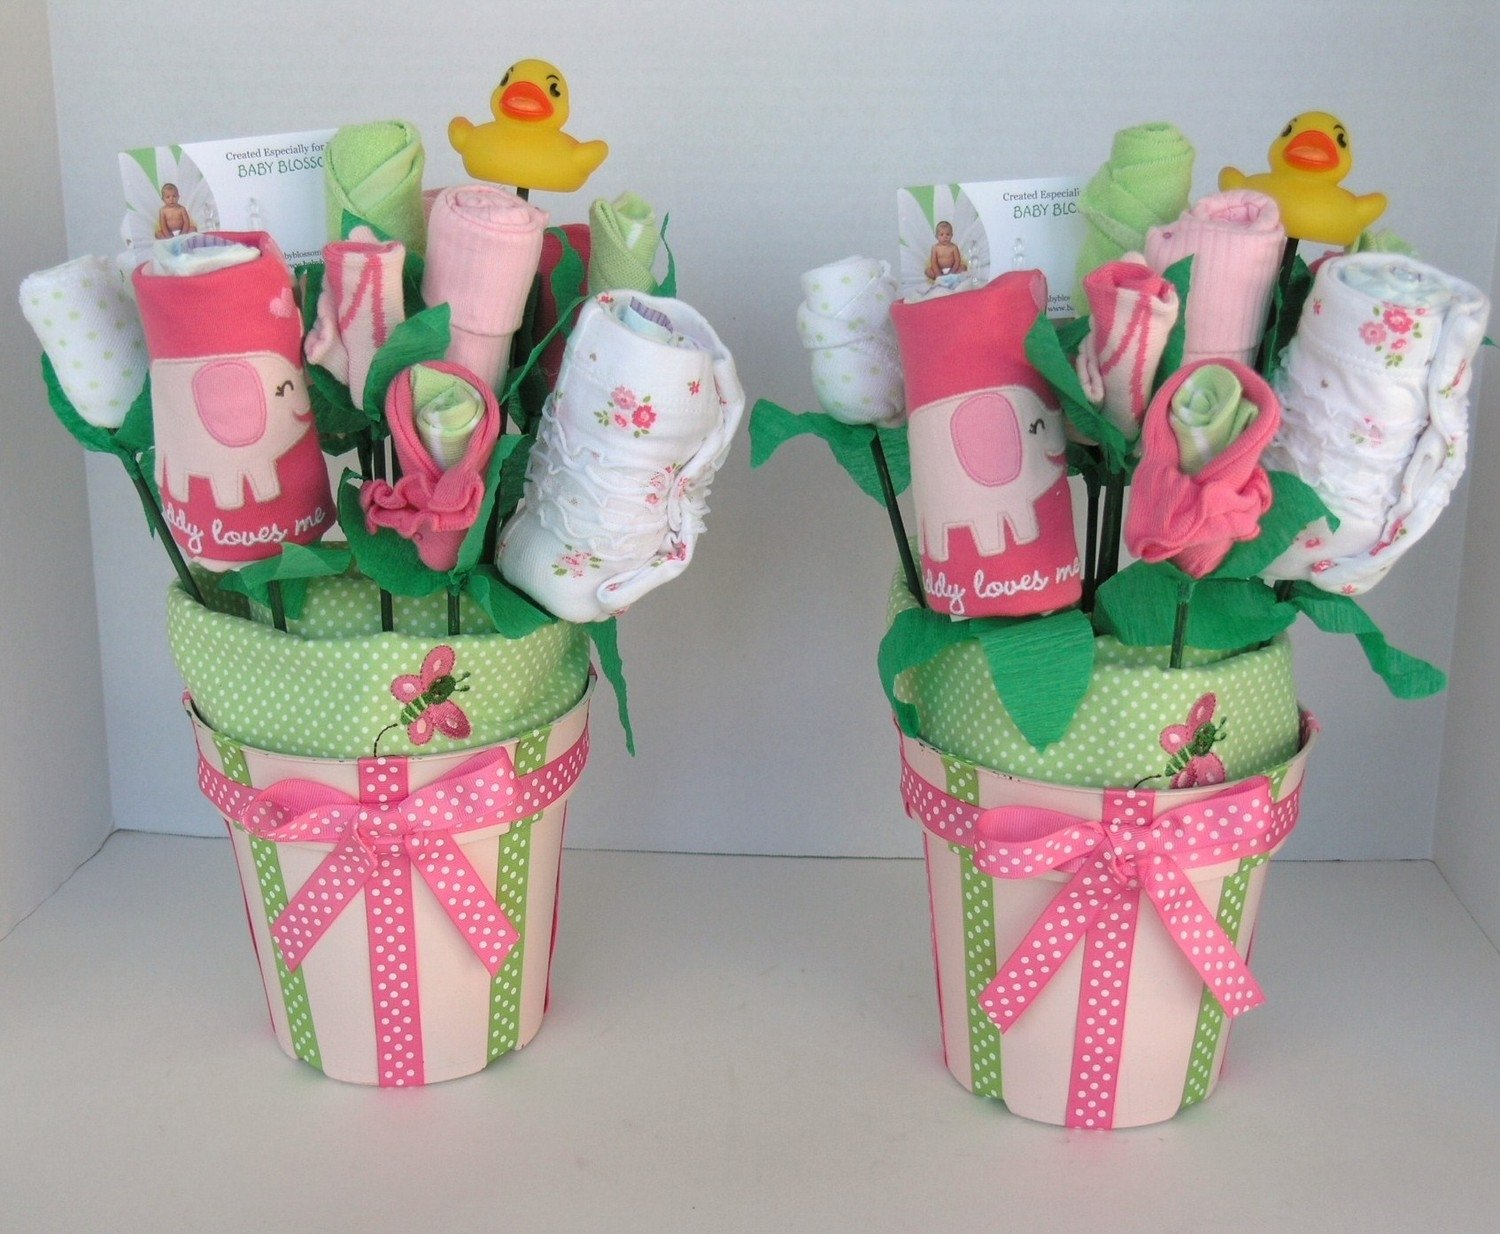 10 Fabulous Ideas For Baby Shower Gifts flower diaper unique baby shower gift ideas baby shower ideas gallery